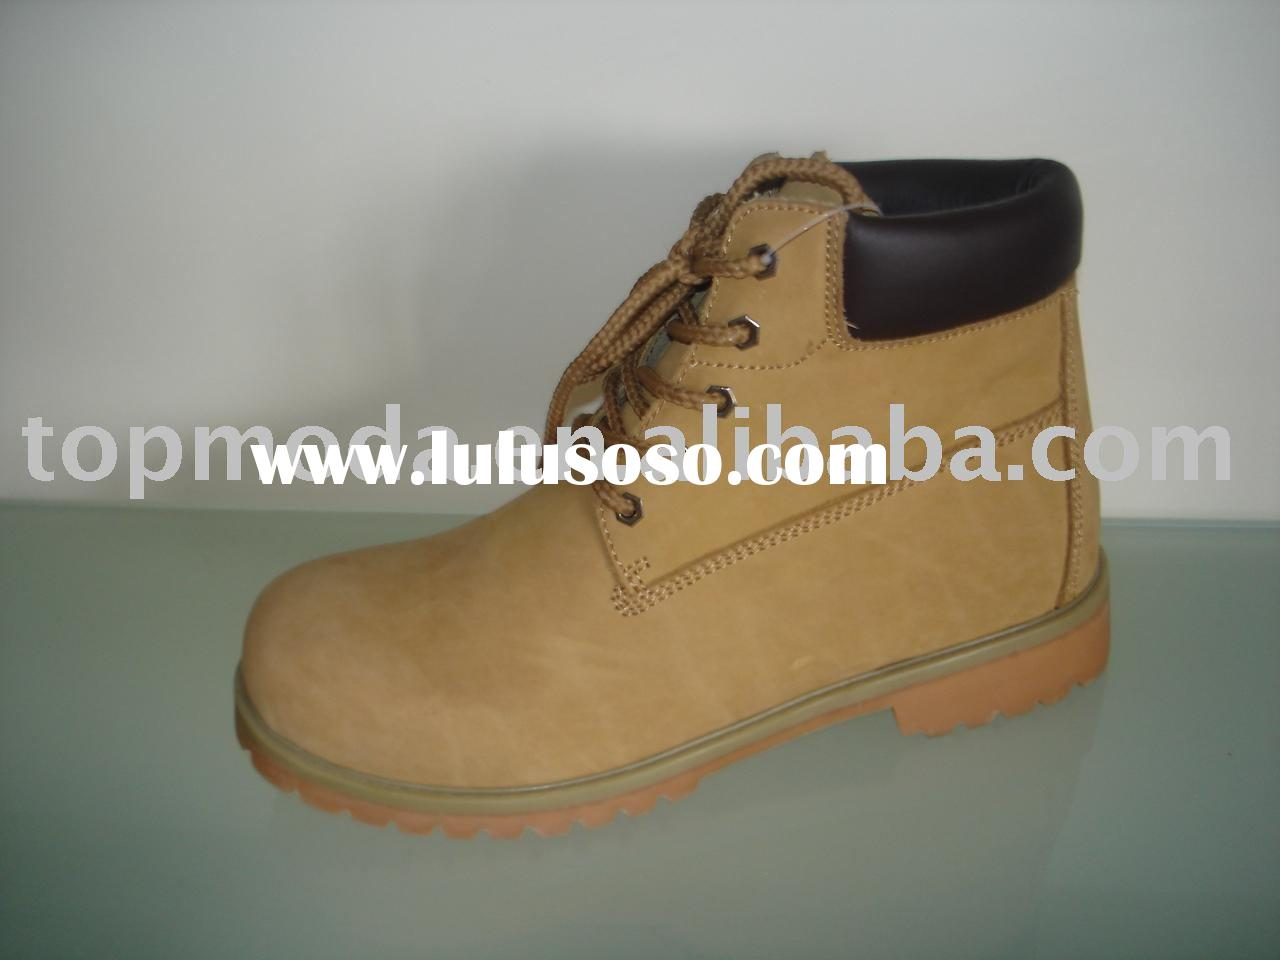 Men's safety boots, work boots, climbing shoes, low price and good quality, click here, buy